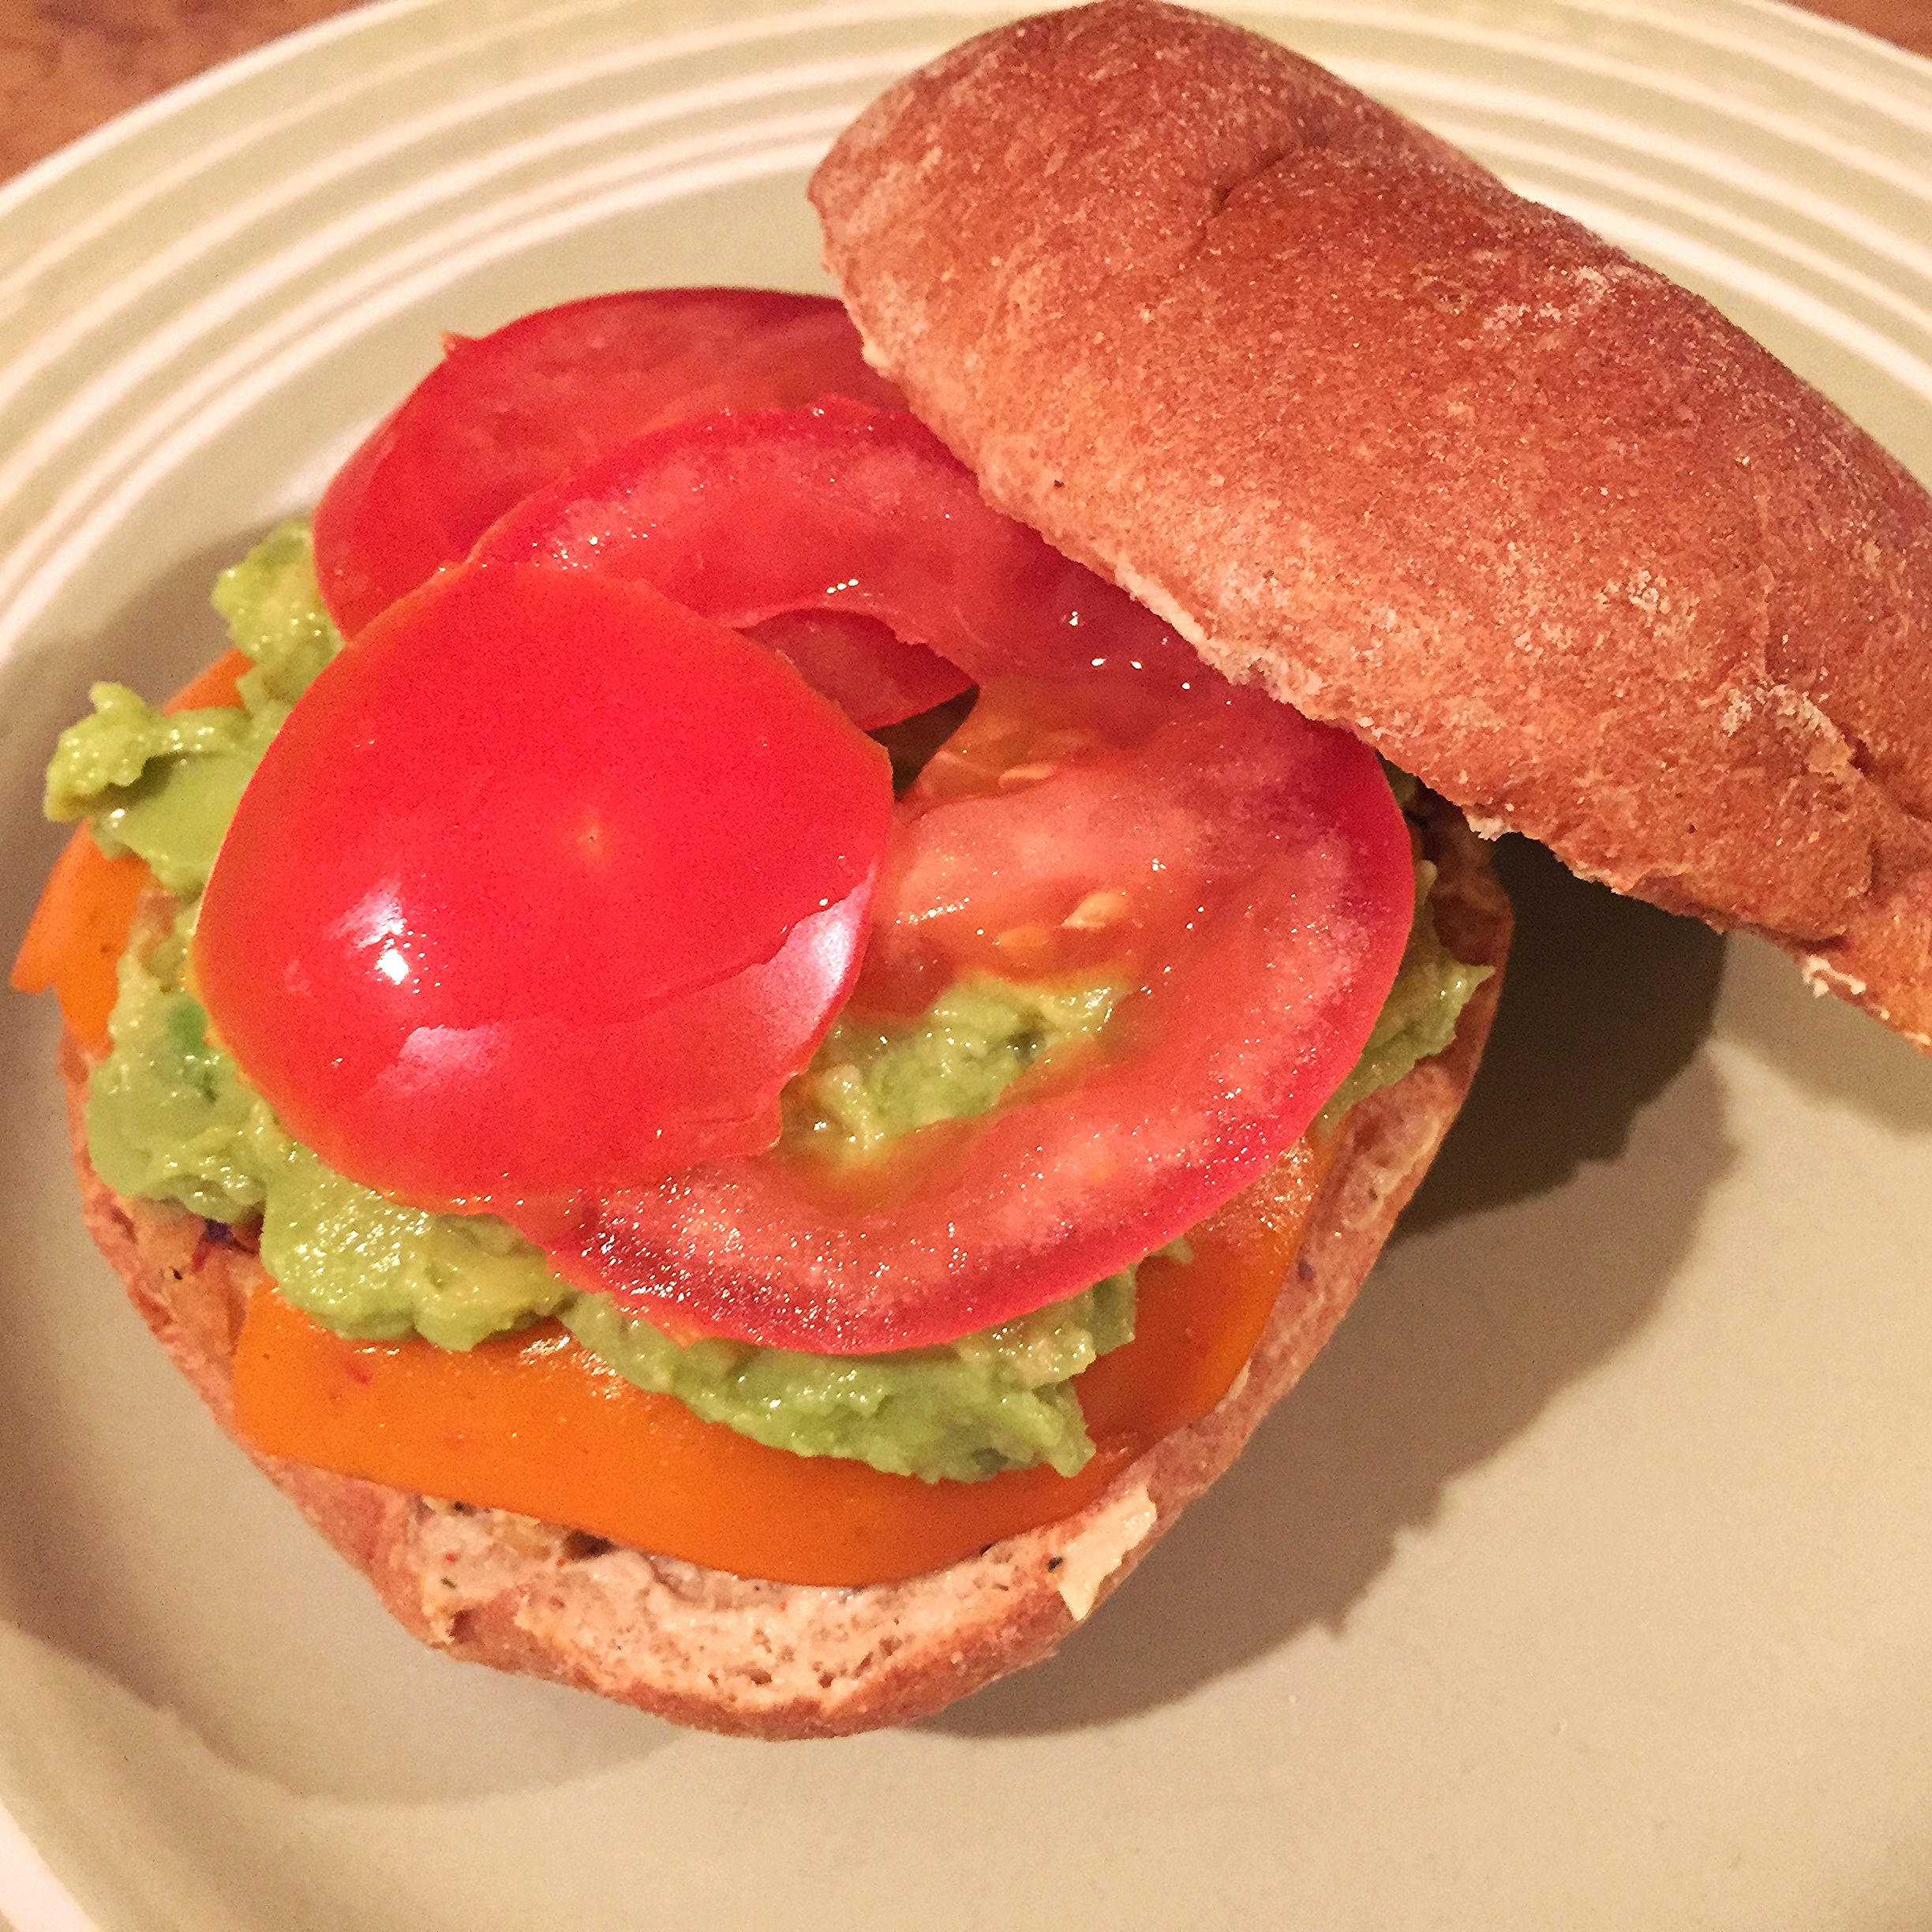 White bean and red lentil burger topped with vegan condiments